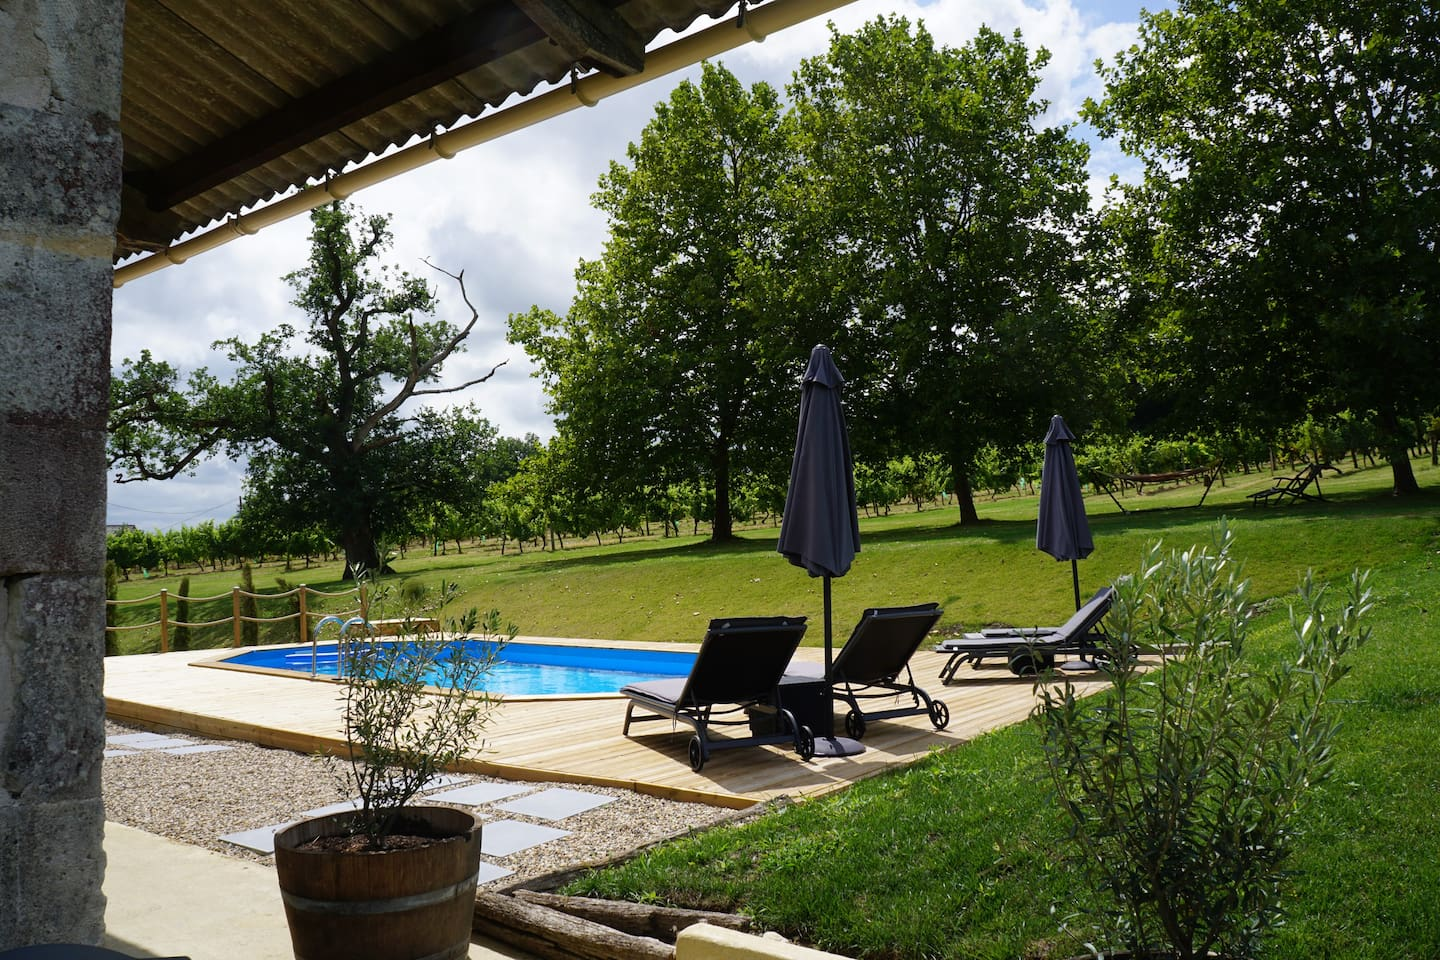 The pool is set in front of a backdrop of vines